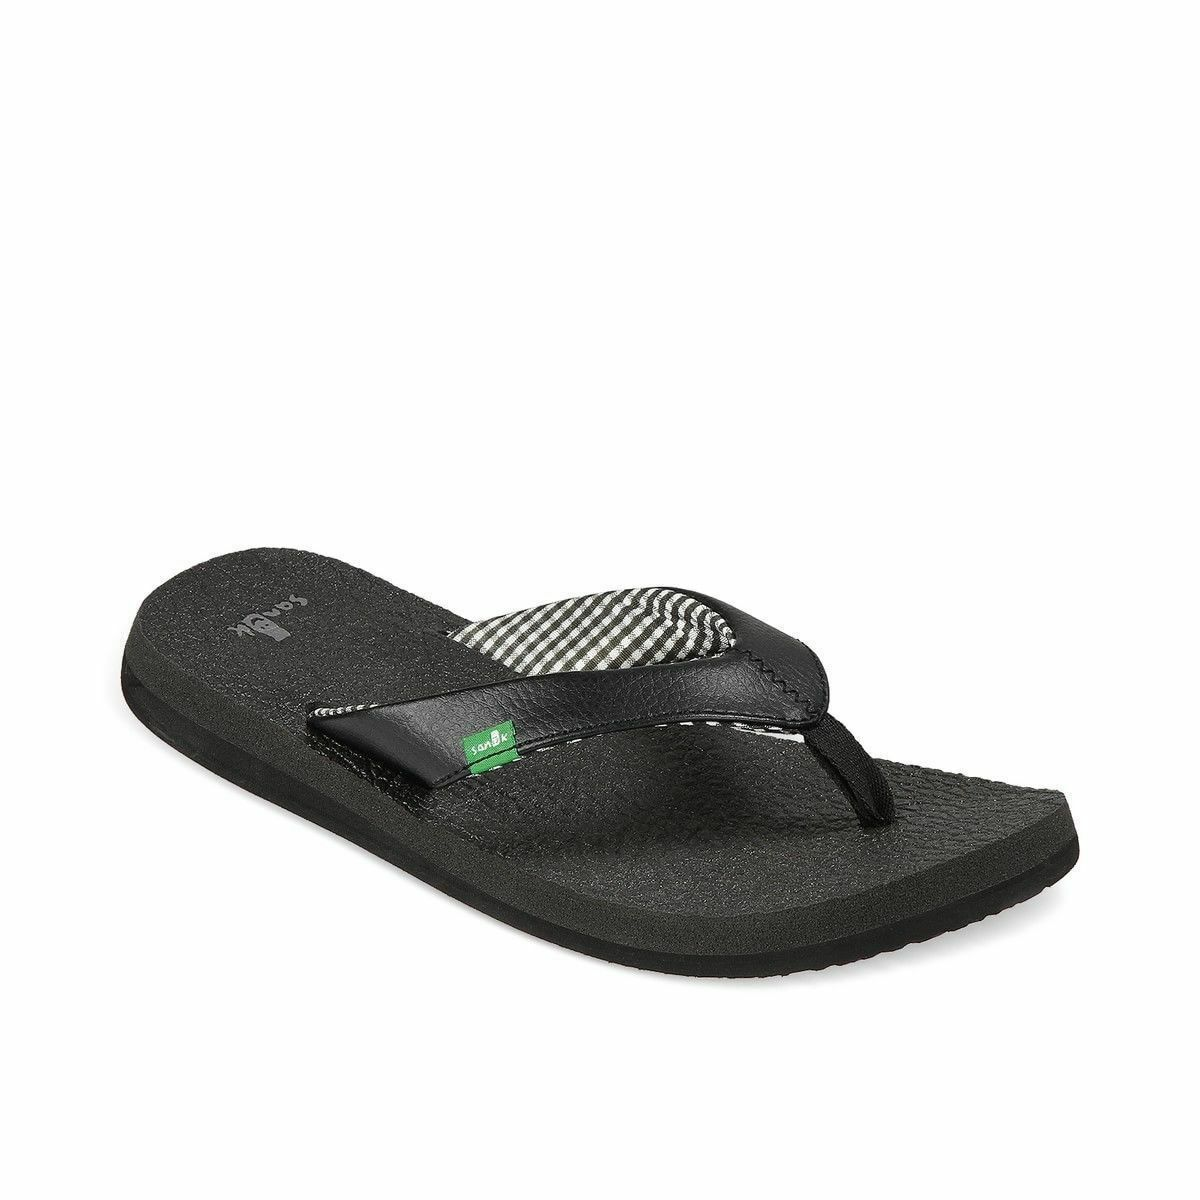 Women Sanuk Yoga Mat Flip Flop Sandal SWS2908 Ebony 100% Authentic Brand New